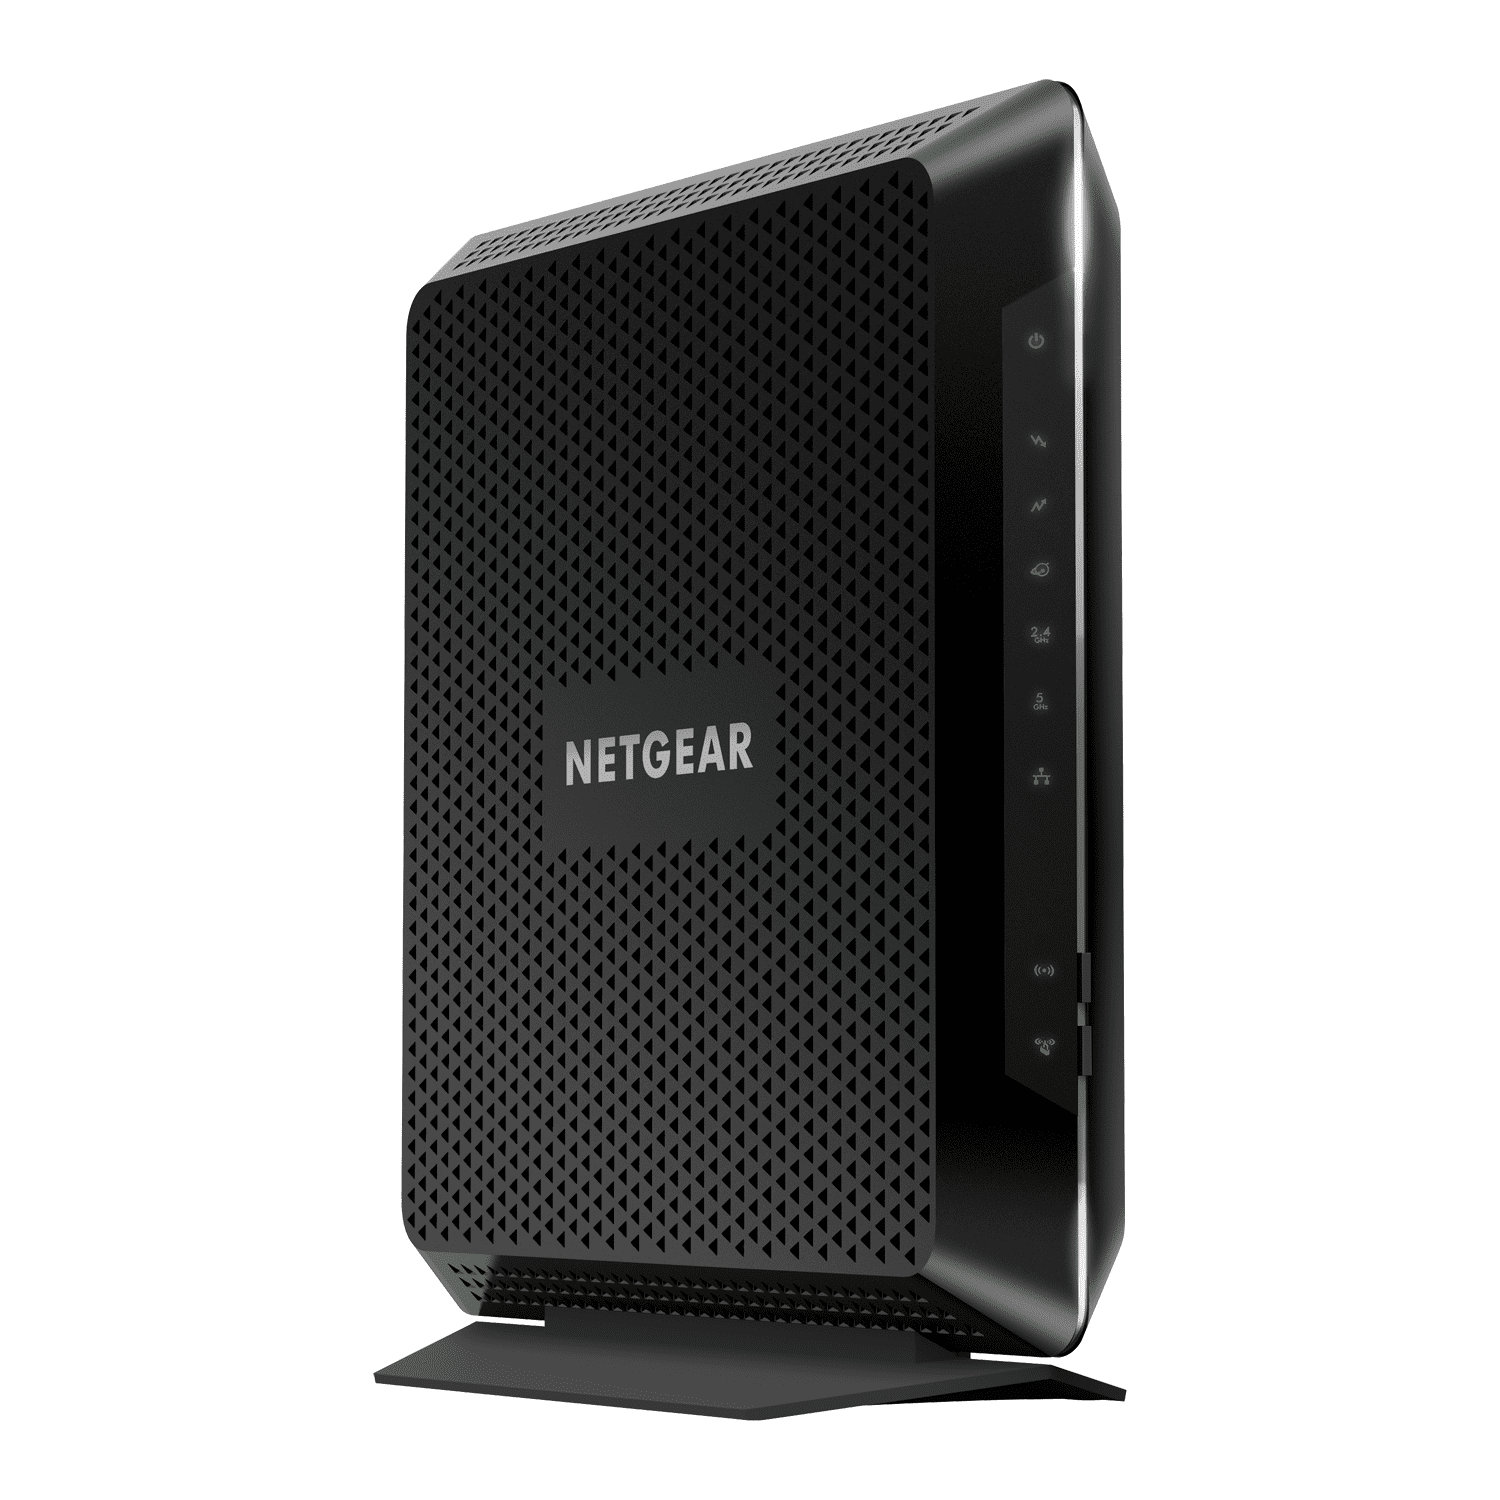 NETGEAR - Nighthawk C7000 AC1900 WiFi Router with DOCSIS 3.0 Cable Modem | Certified for XFINITY by Comcast, Spectrum, Cox, and more